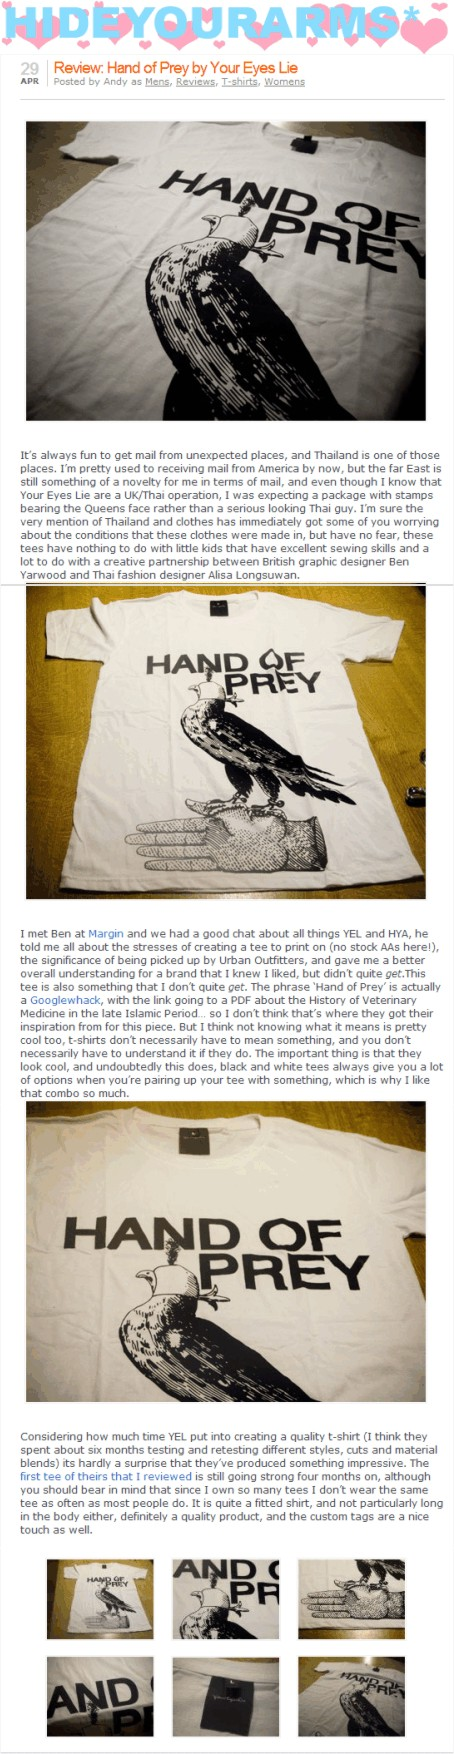 Review: Hand of Prey by Your Eyes Lie   Its always fun to get mail from unexpected places, and Thailand is one of those places. Im pretty used to receiving mail from America by now, but the far East is still something of a novelty for me in terms of mail, and even though I know that Your Eyes Lie are a UK/Thai operation, I was expecting a package with stamps bearing the Queens face rather than a serious looking Thai guy. Im sure the very mention of Thailand and clothes has immediately got some of you worrying about the conditions that these clothes were made in, but have no fear, these tees have nothing to do with little kids that have excellent sewing skills and a lot to do with a creative partnership between British graphic designer Ben Yarwood and Thai fashion designer Alisa Longsuwan. I met Ben at Margin and we had a good chat about all things YEL and HYA, he told me all about the stresses of creating a tee to print on (no stock AAs here!), the significance of being picked up by Urban Outfitters, and gave me a better overall understanding for a brand that I knew I liked, but didnt quite get.This tee is also something that I dont quite get. The phrase Hand of Prey is actually a Googlewhack, with the link going to a PDF about the History of Veterinary Medicine in the late Islamic Period so I dont think thats where they got their inspiration from for this piece. But I think not knowing what it means is pretty cool too, t-shirts dont necessarily have to mean something, and you dont necessarily have to understand it if they do. The important thing is that they look cool, and undoubtedly this does, black and white tees always give you a lot of options when youre pairing up your tee with something, which is why I like that combo so much. Considering how much time YEL put into creating a quality t-shirt (I think they spent about six months testing and retesting different styles, cuts and material blends) its hardly a surprise that theyve produced something impressive. The first tee of theirs that I reviewed is still going strong four months on, although you should bear in mind that since I own so many tees I dont wear the same tee as often as most people do. It is quite a fitted shirt, and not particularly long in the body either, definitely a quality product, and the custom tags are a nice touch as well.